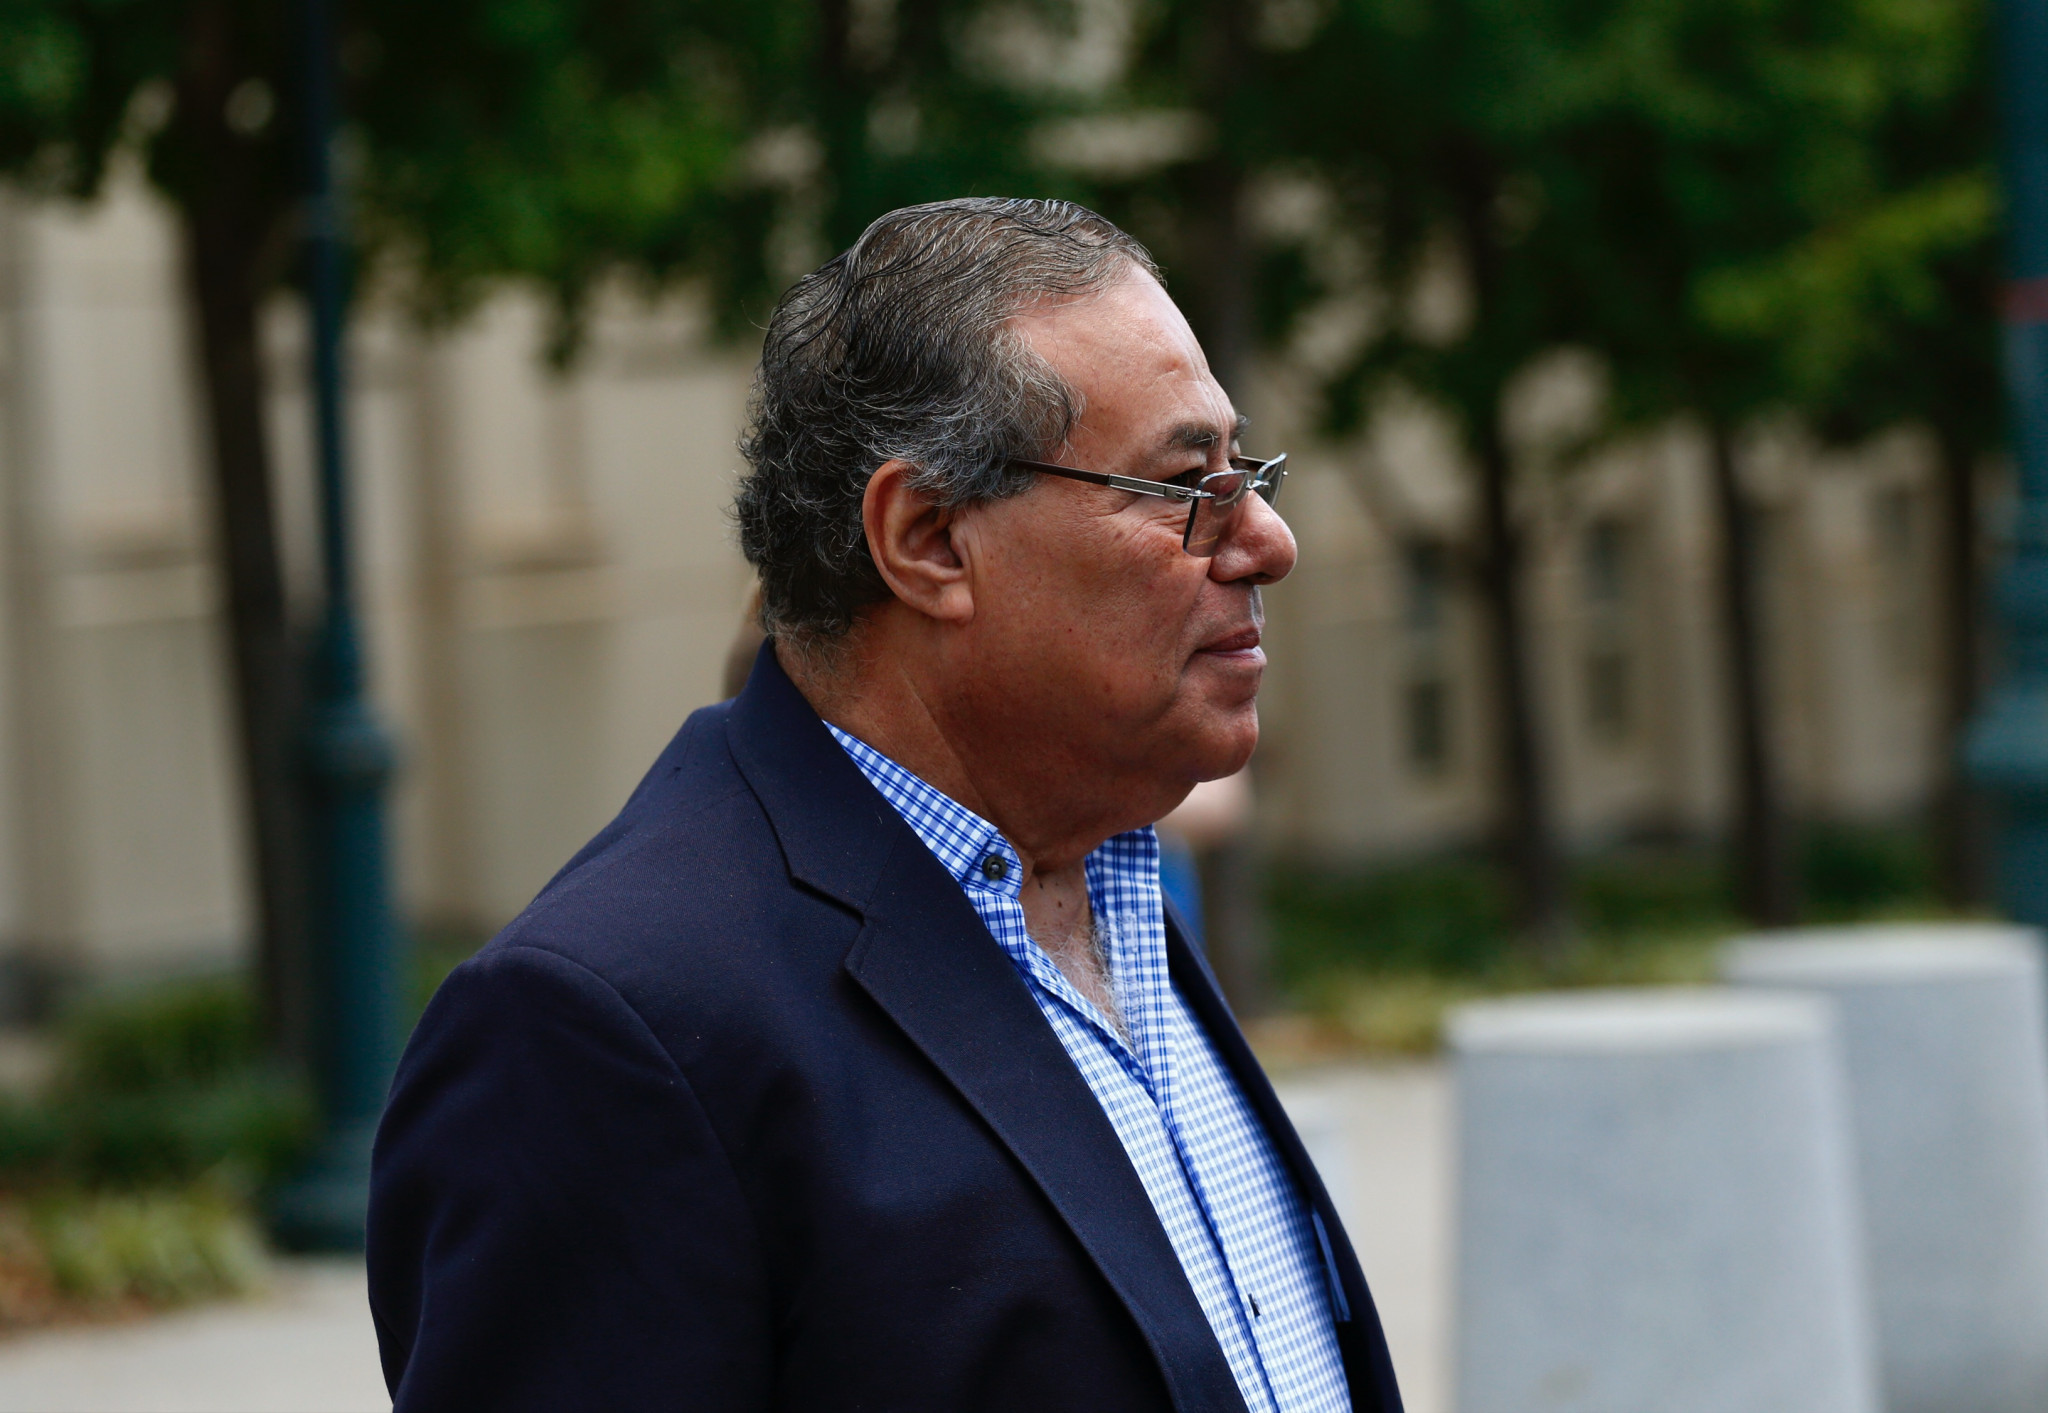 Nicaraguan official charged in FIFA corruption scandal dies aged 67